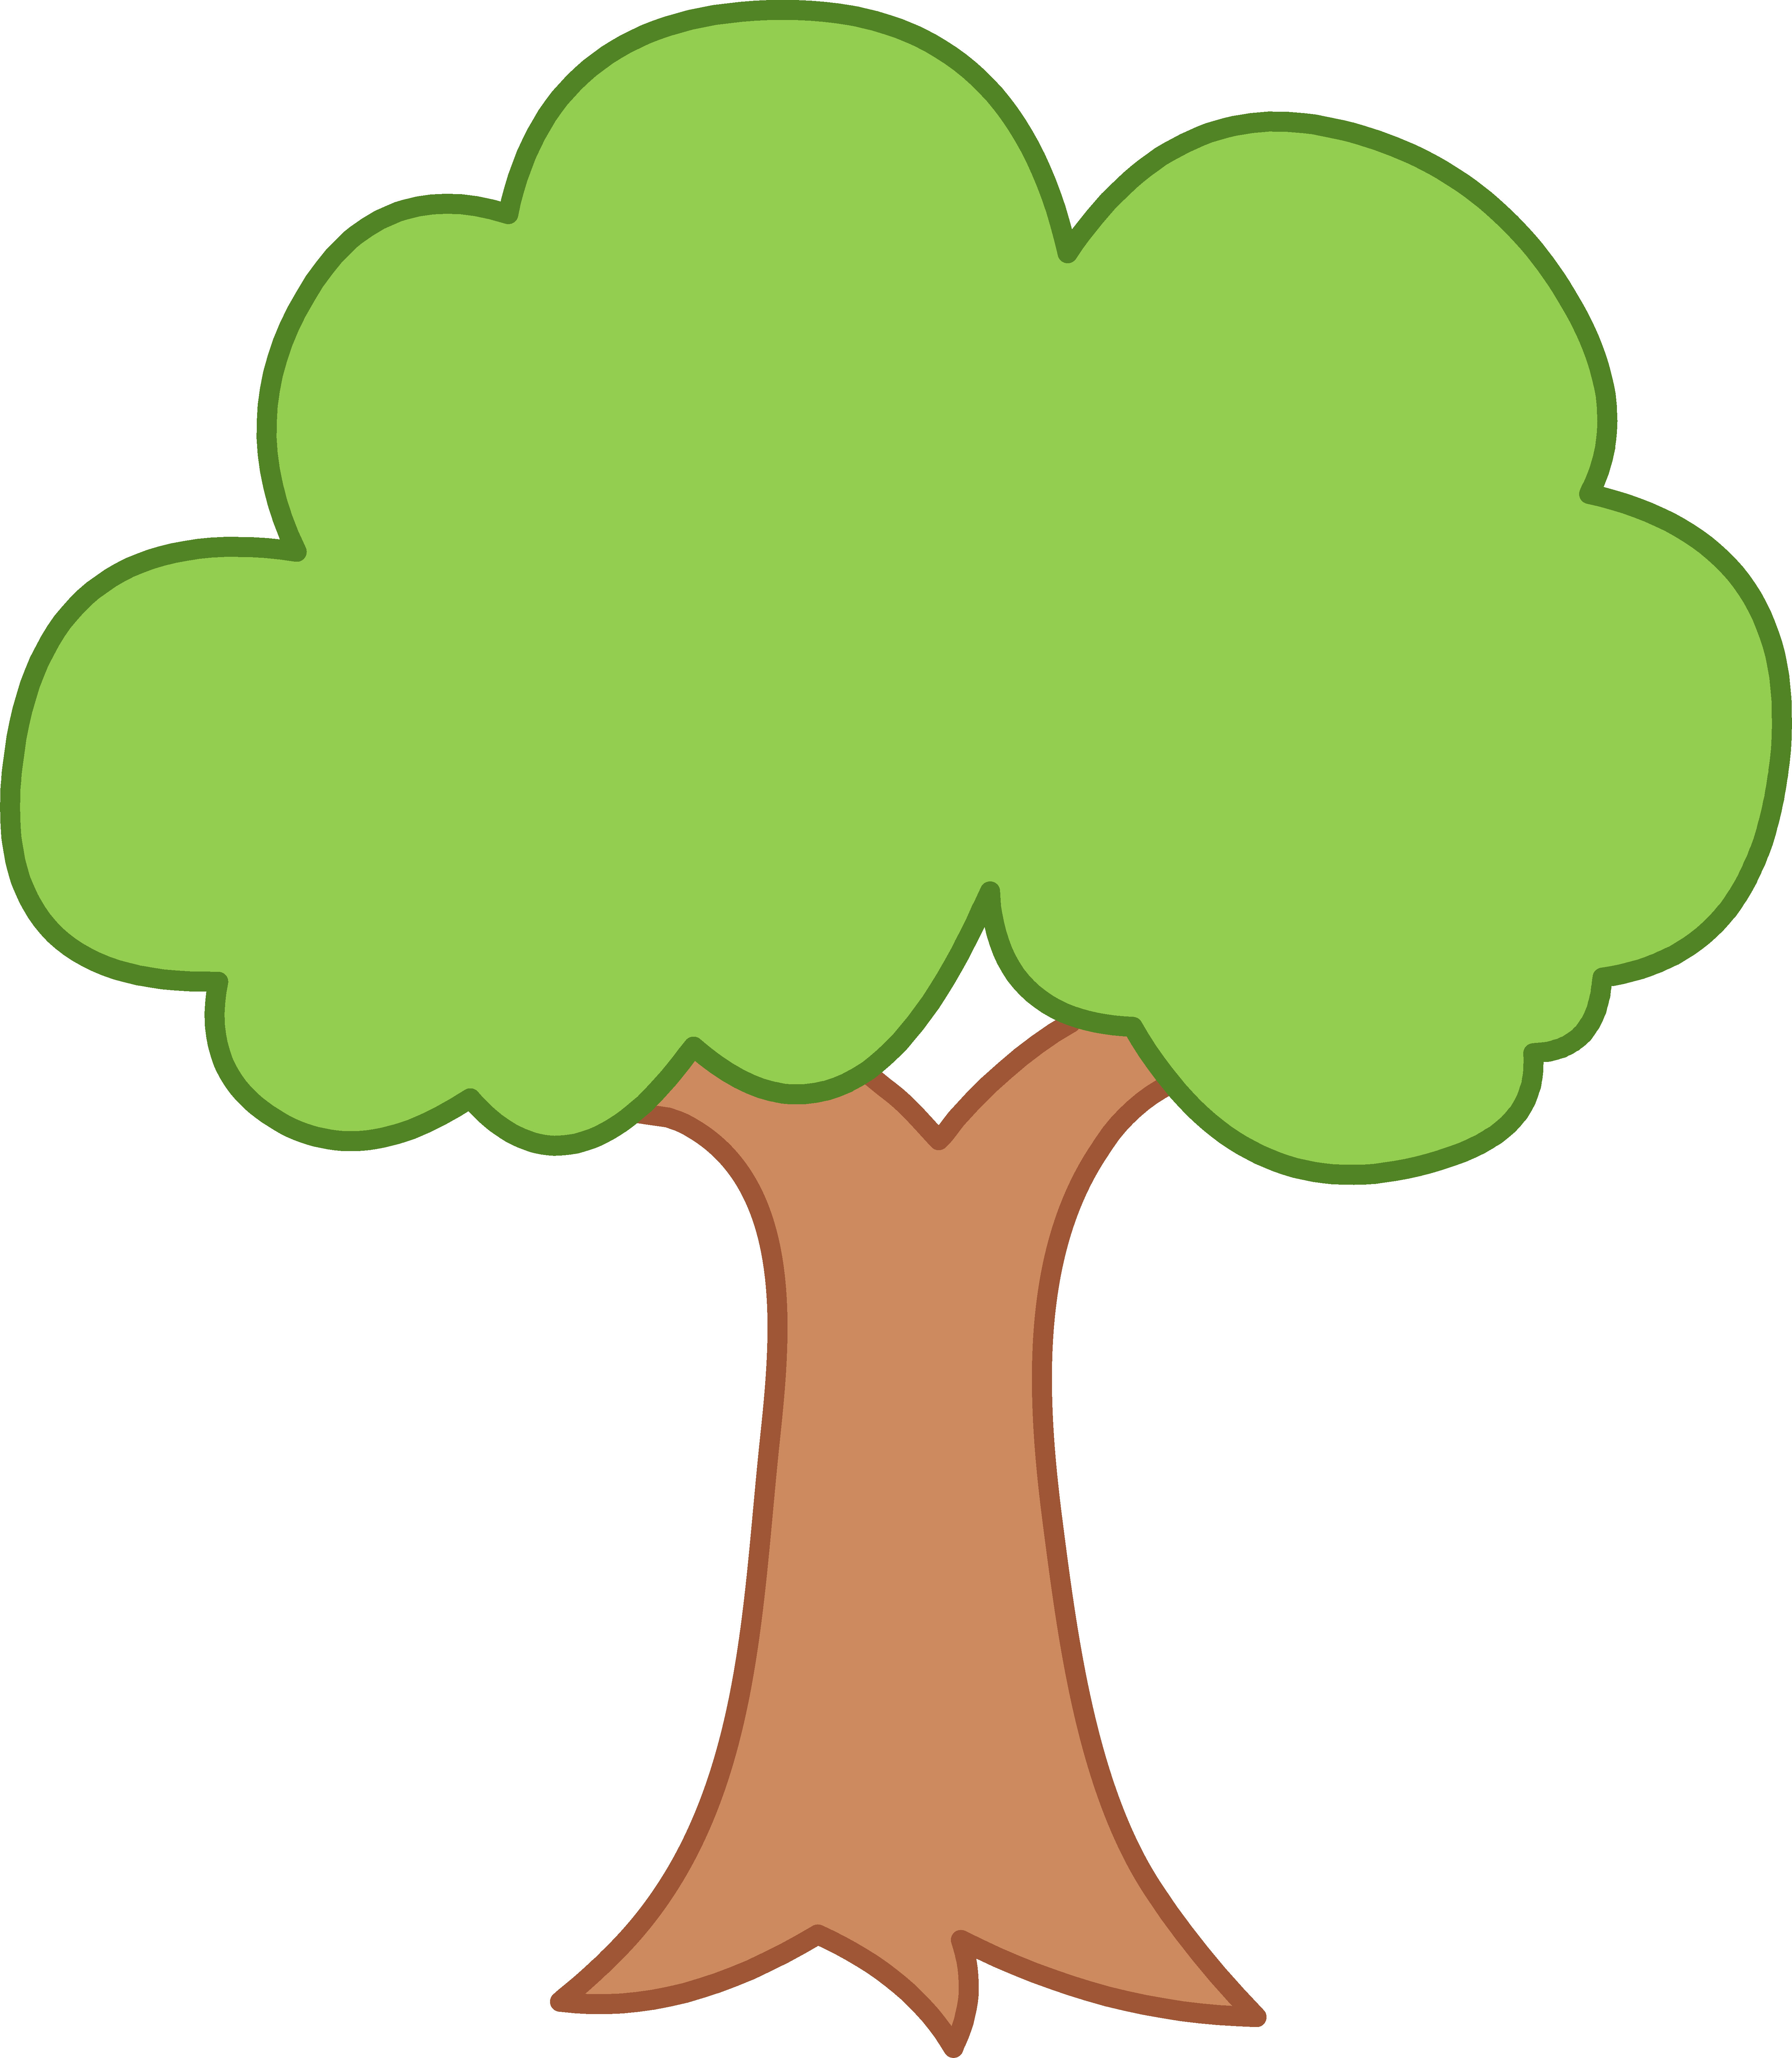 png to clipart - photo #7